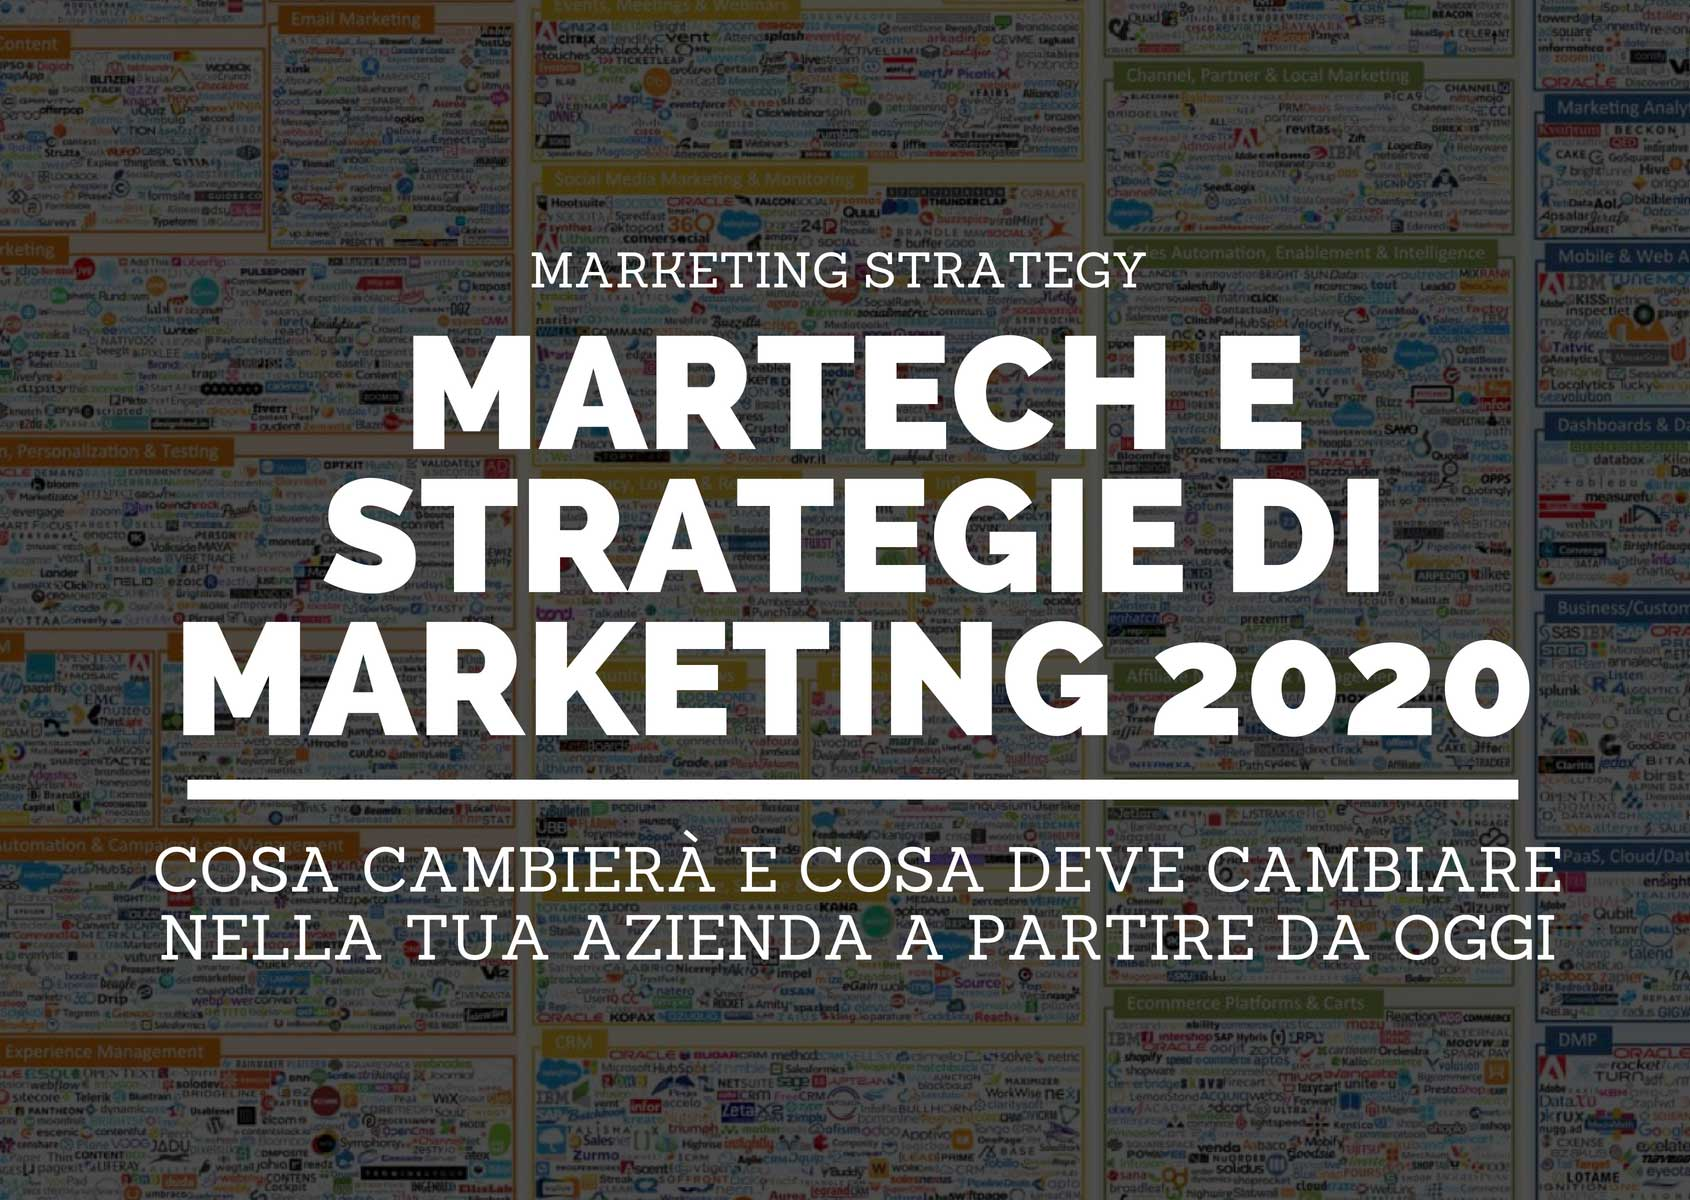 Le tecnologie che cambieranno le tue strategie di marketing entro il 2020